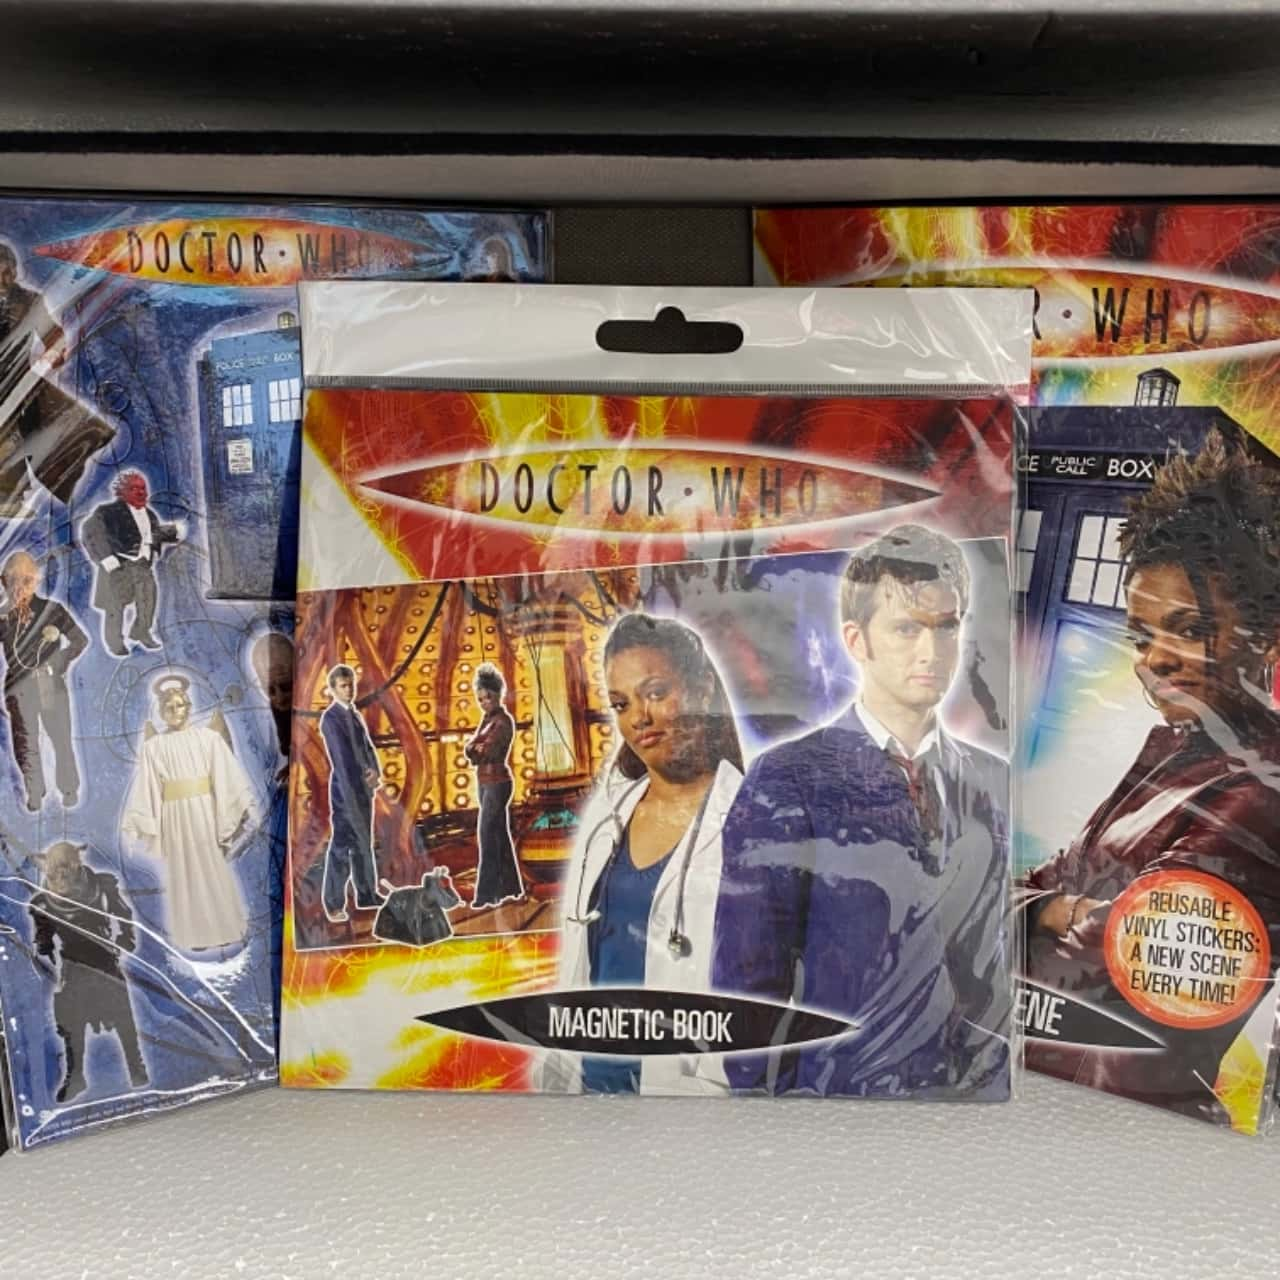 Dr Who Magnet Book, Magnet Set and Scene with reusable vinyl stickers